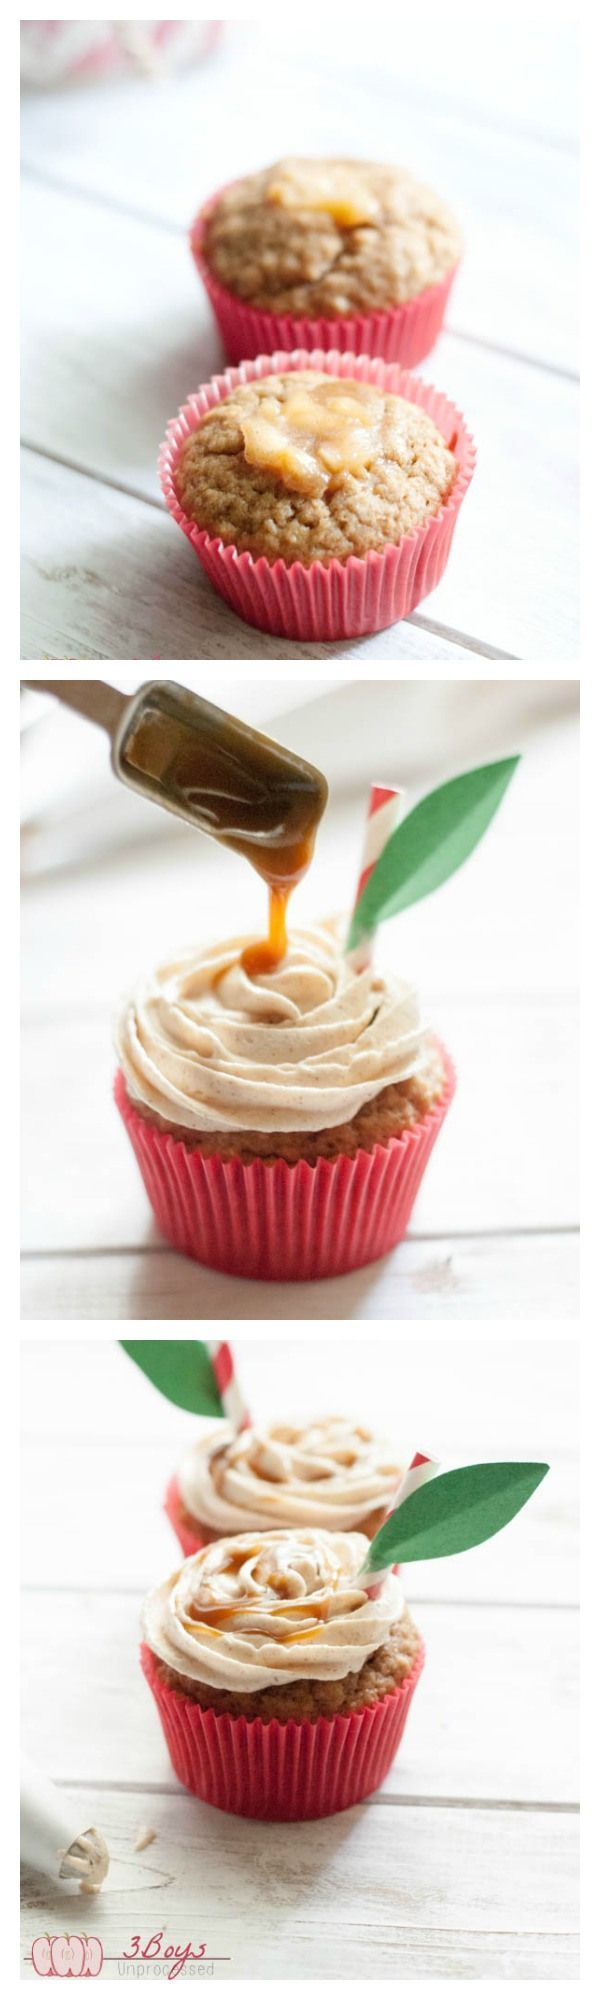 Caramel Apple Cupcakes made 100% from scratch with whole wheat flour. The perfect fall treat!